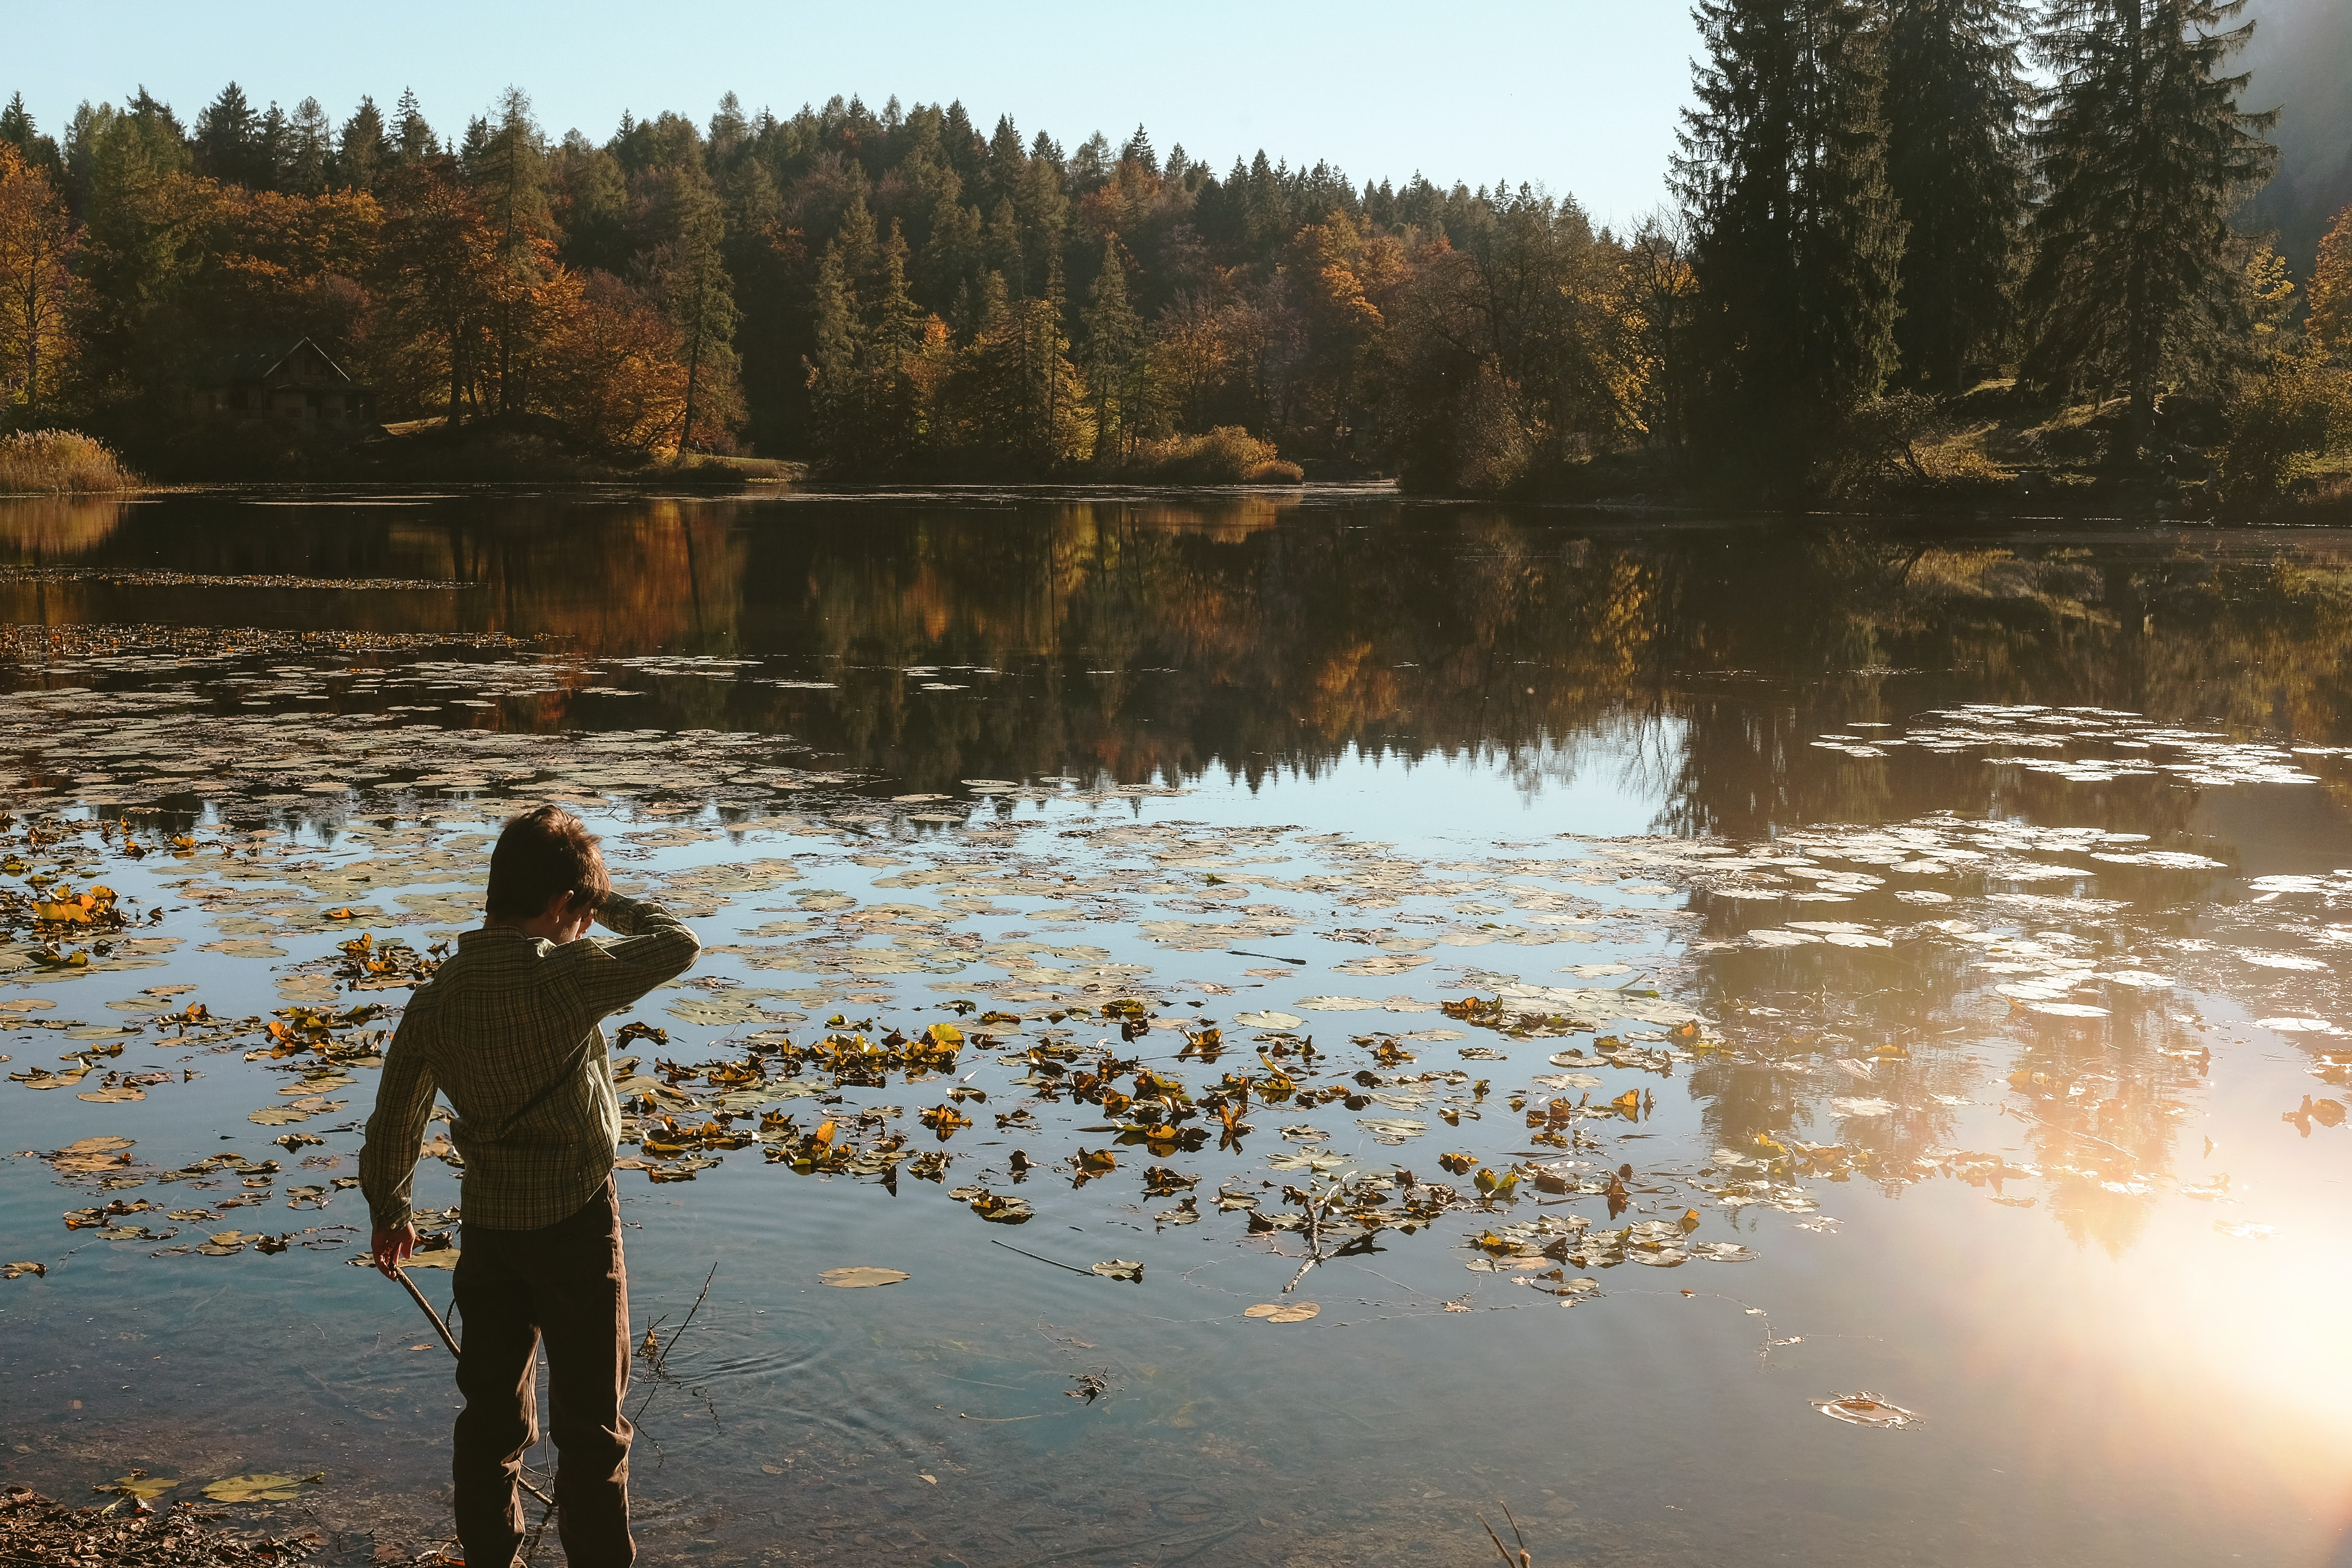 boy standing beside body of water during daytime